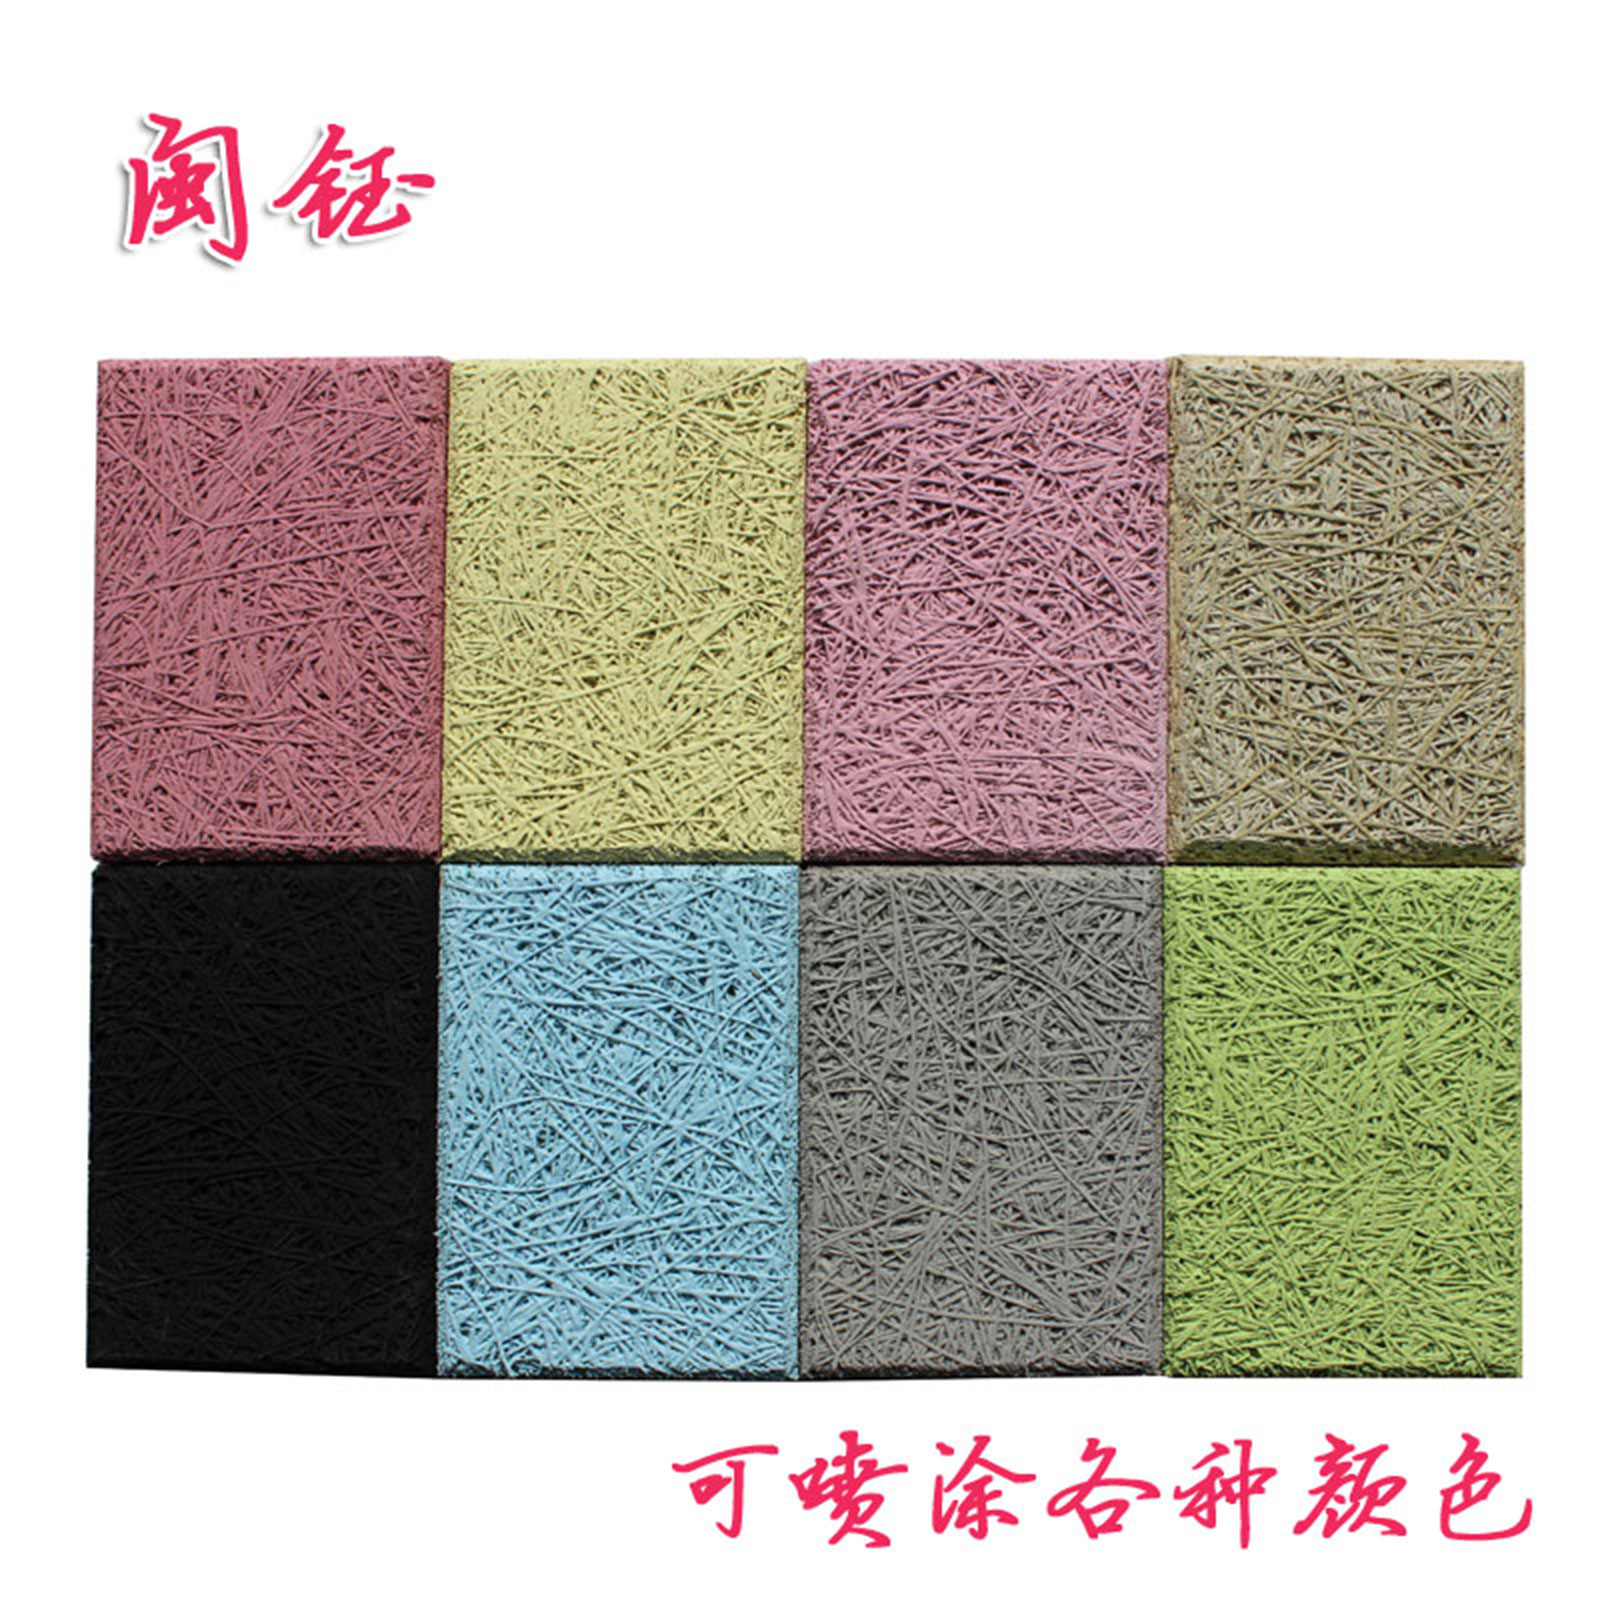 Wood Wire Sound Absorbing Panel Wood Color Ktv Cinema Sound Insulation  Sound Insulation Decoration Material Interior Wall Ceiling Cement